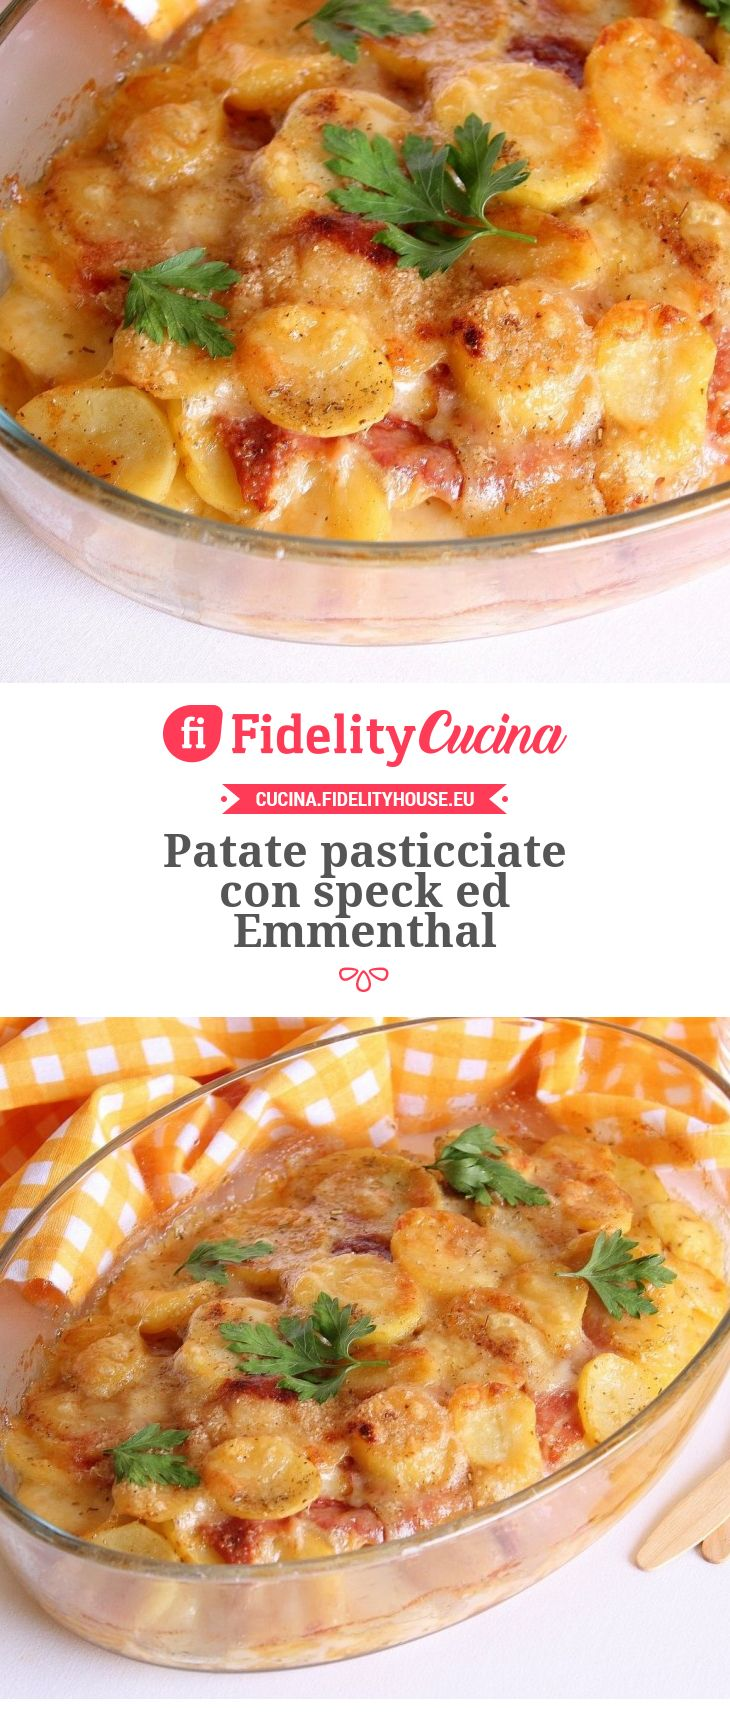 Patate pasticciate con speck ed Emmenthal